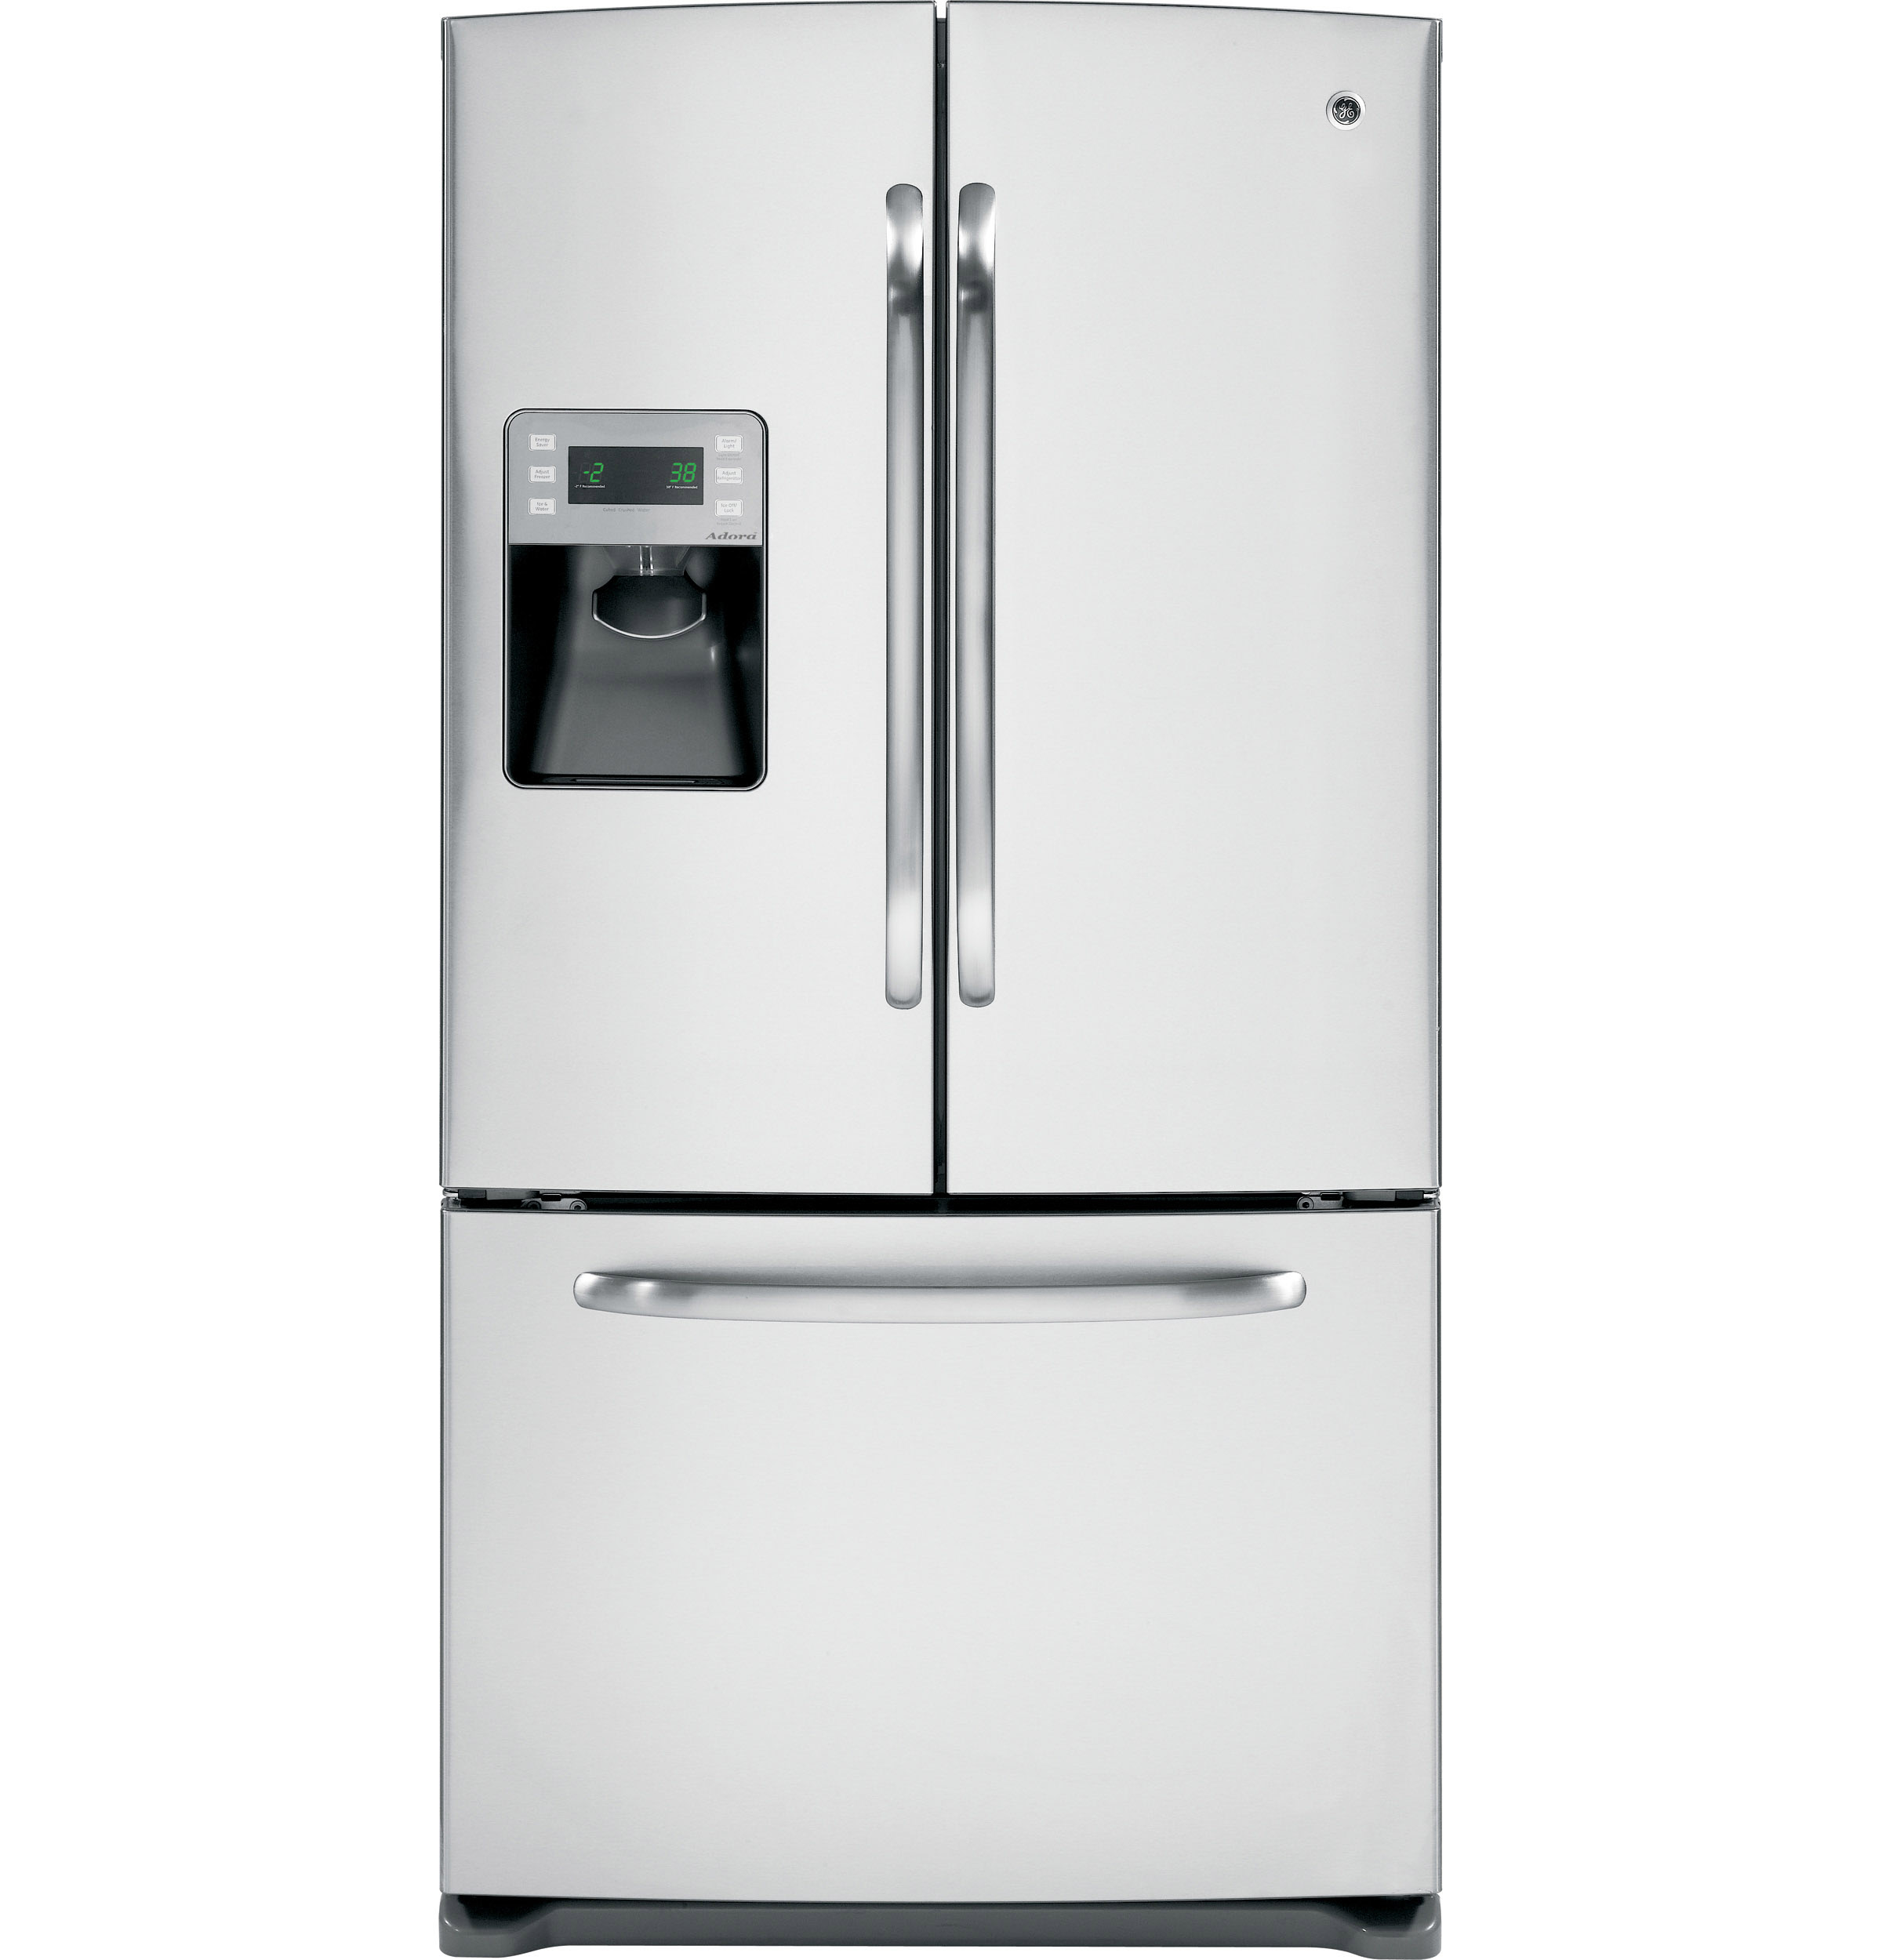 GE ENERGY STAR 25 9 Cu Ft French Door Refrigerator with Icemaker